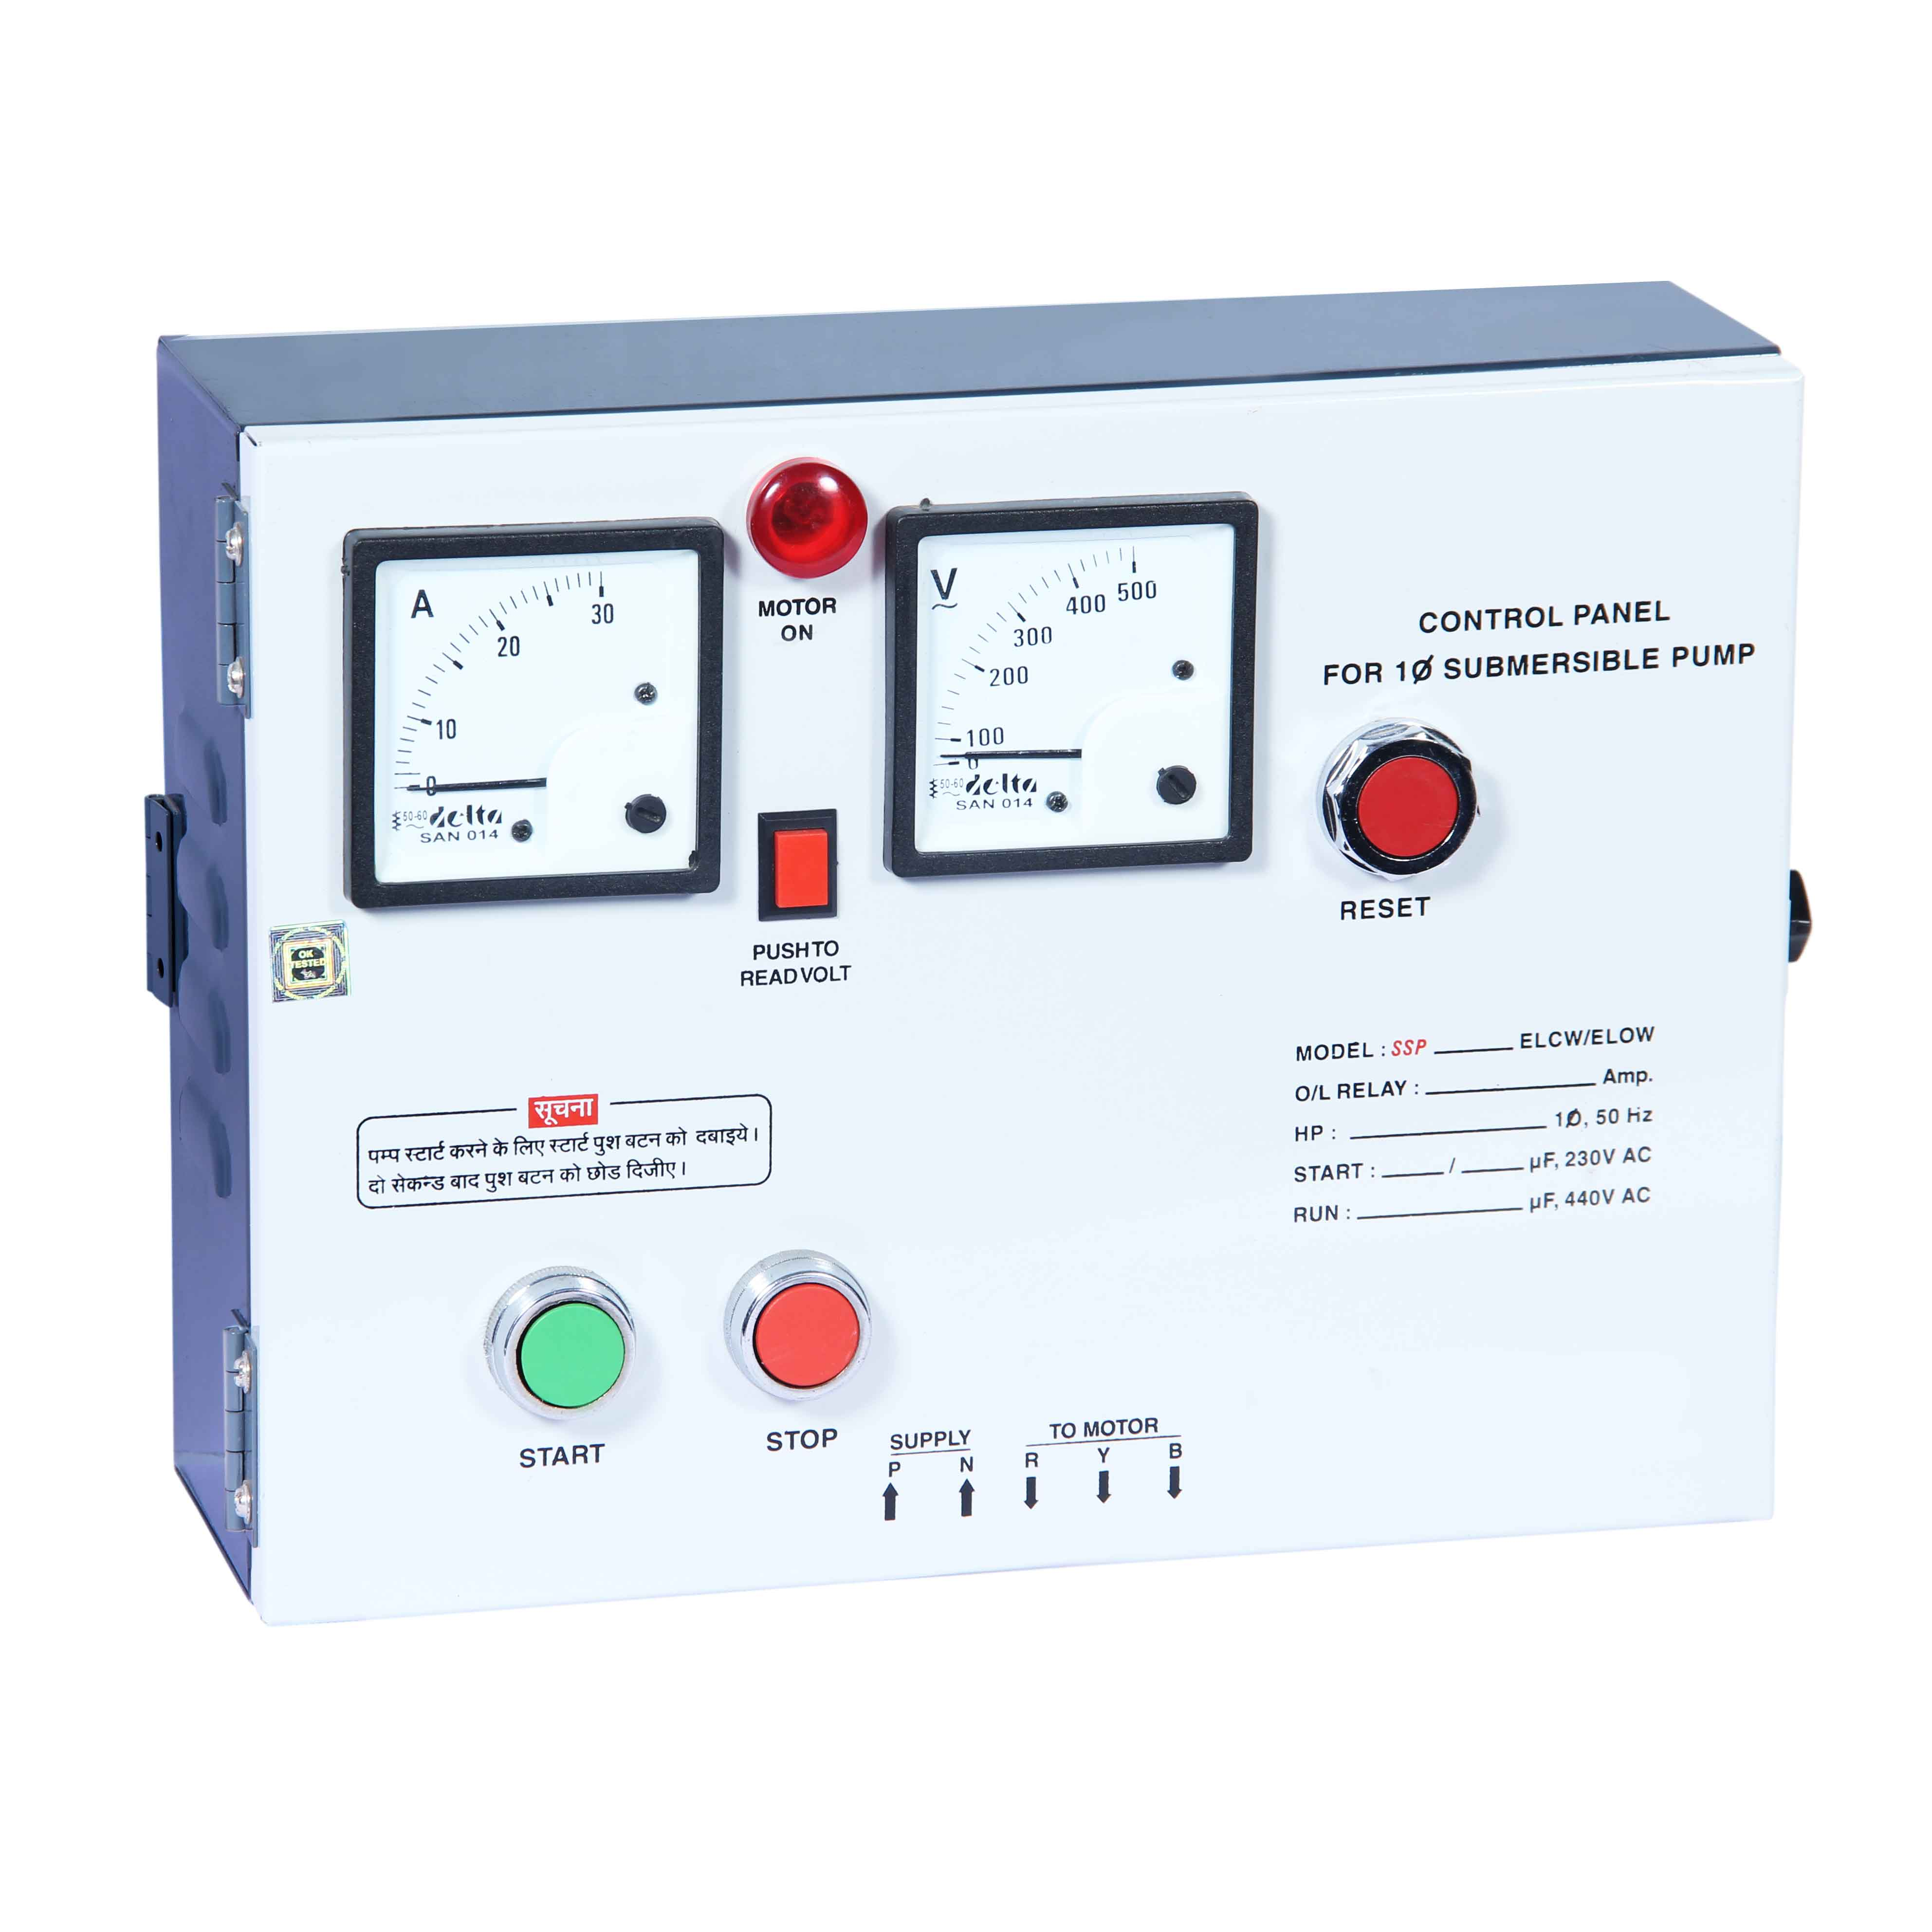 ELCW SQ MTR  Single phase motor starter suitable up to 1.5 HP submersible motor with overload protections by bi metallic relay